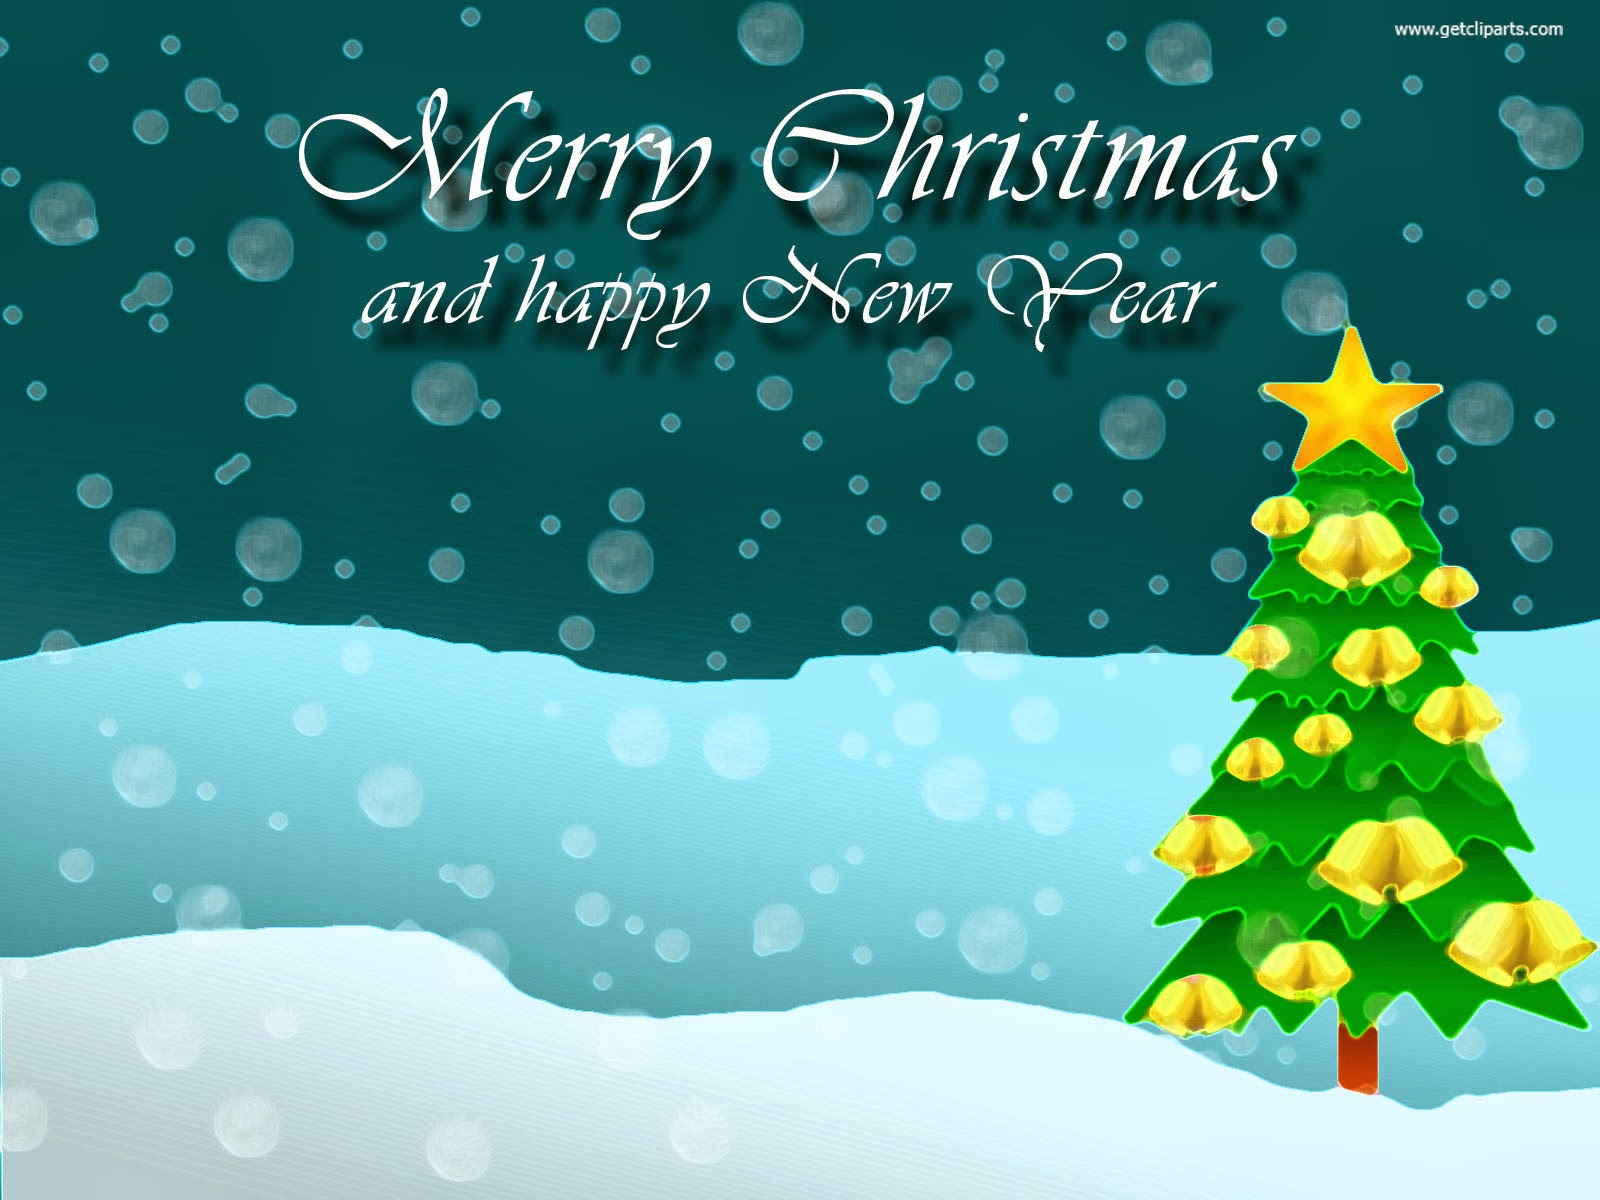 Christmas Hd Wallpapers 2014 Latest Merry Christmas Greetings Hd